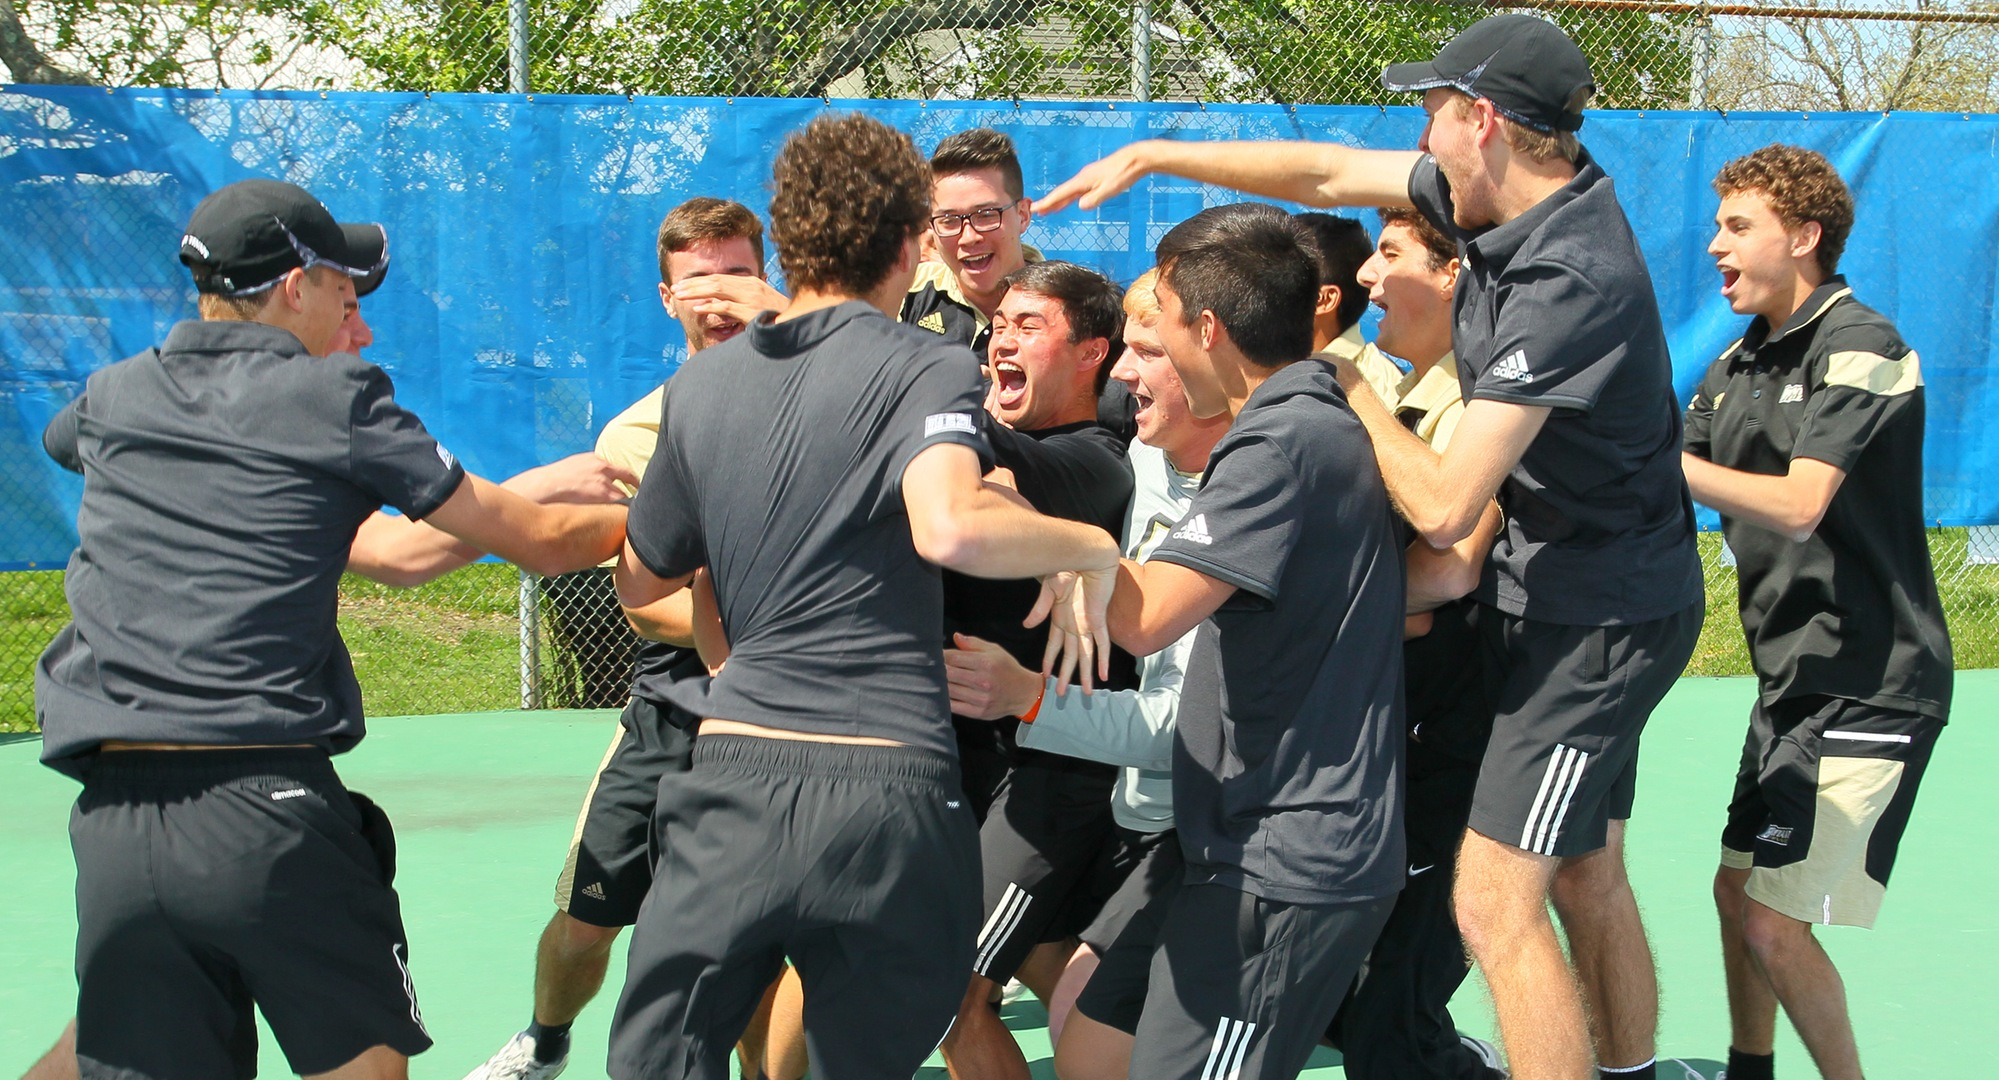 Bulldogs four-peat in NEC Championship, defeat Red Flash, 4-1